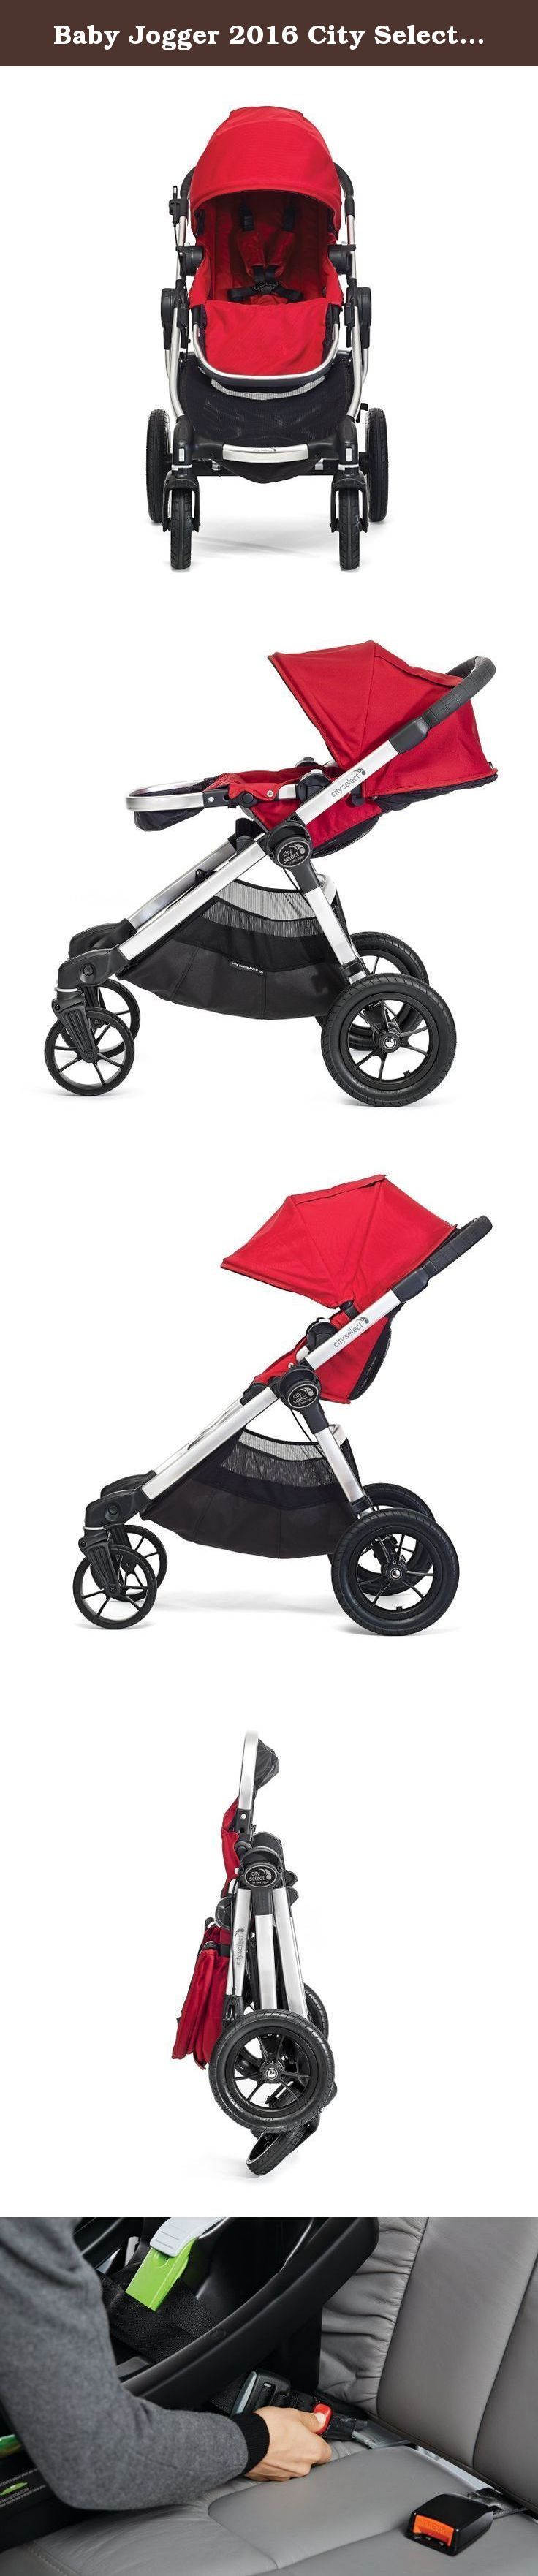 Baby Jogger 2016 City Select Travel System, Ruby/Steel